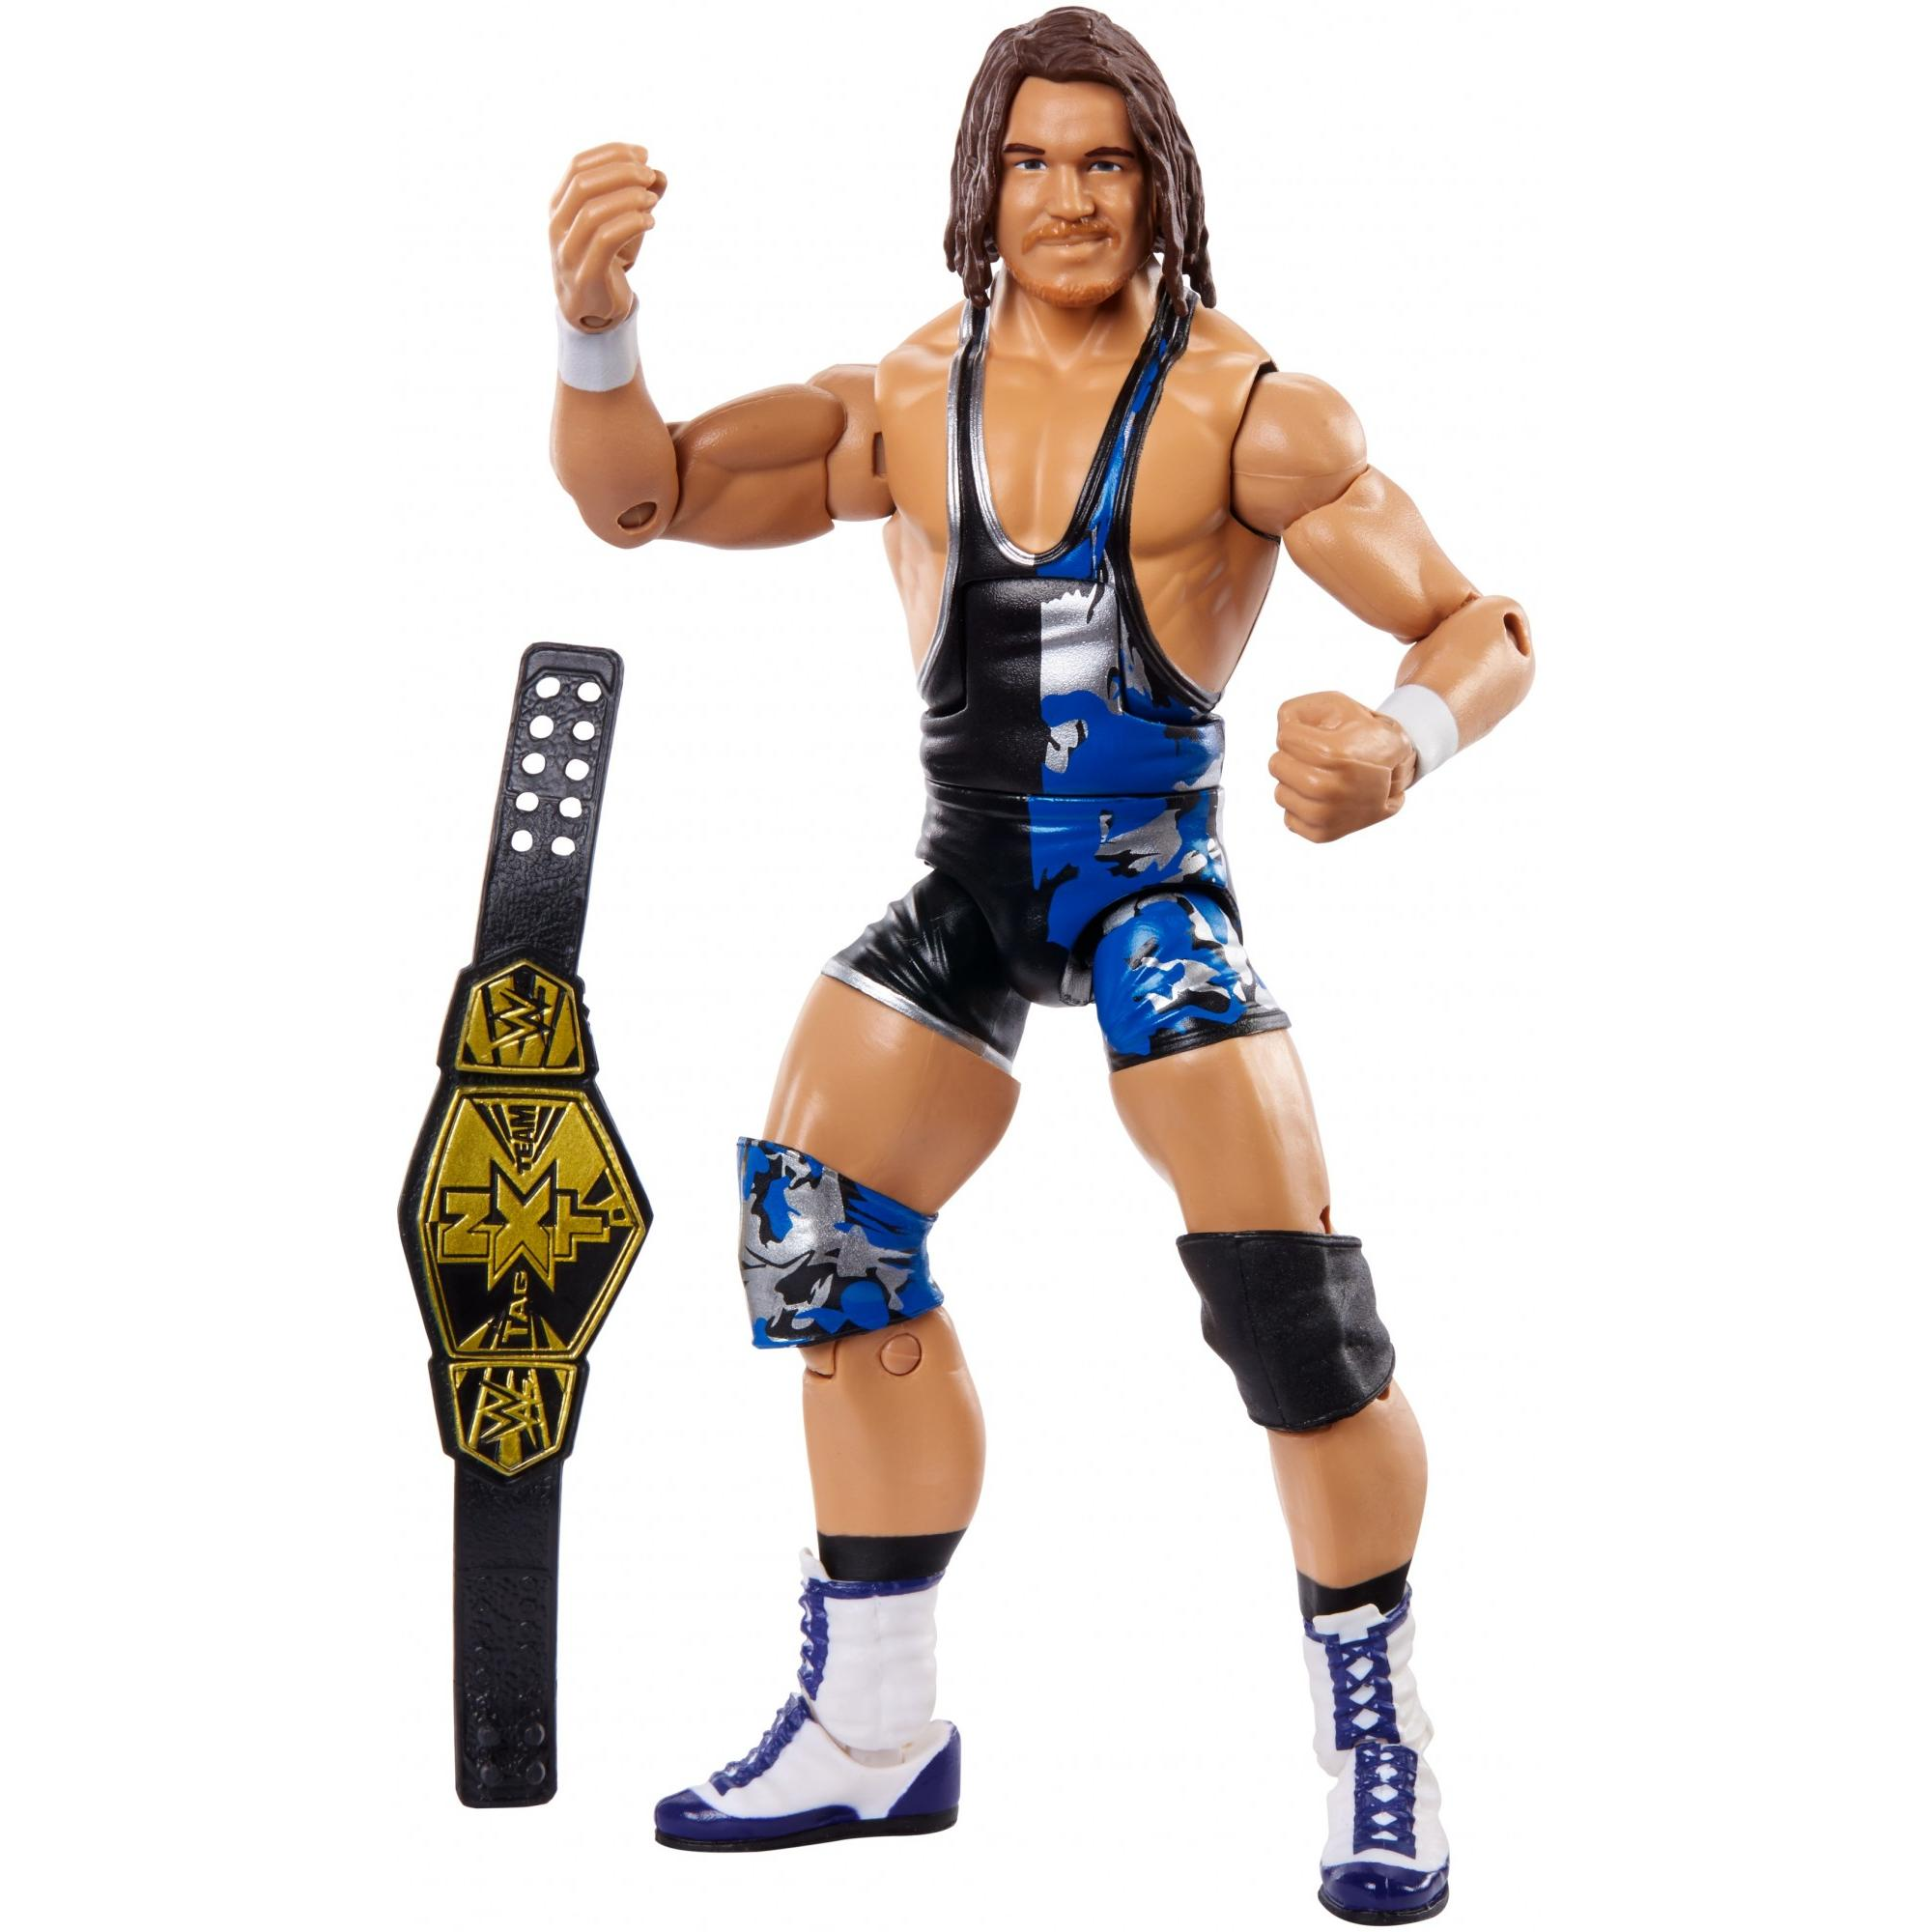 WWE Then, Now & Forever Elite Chad Gable Figure